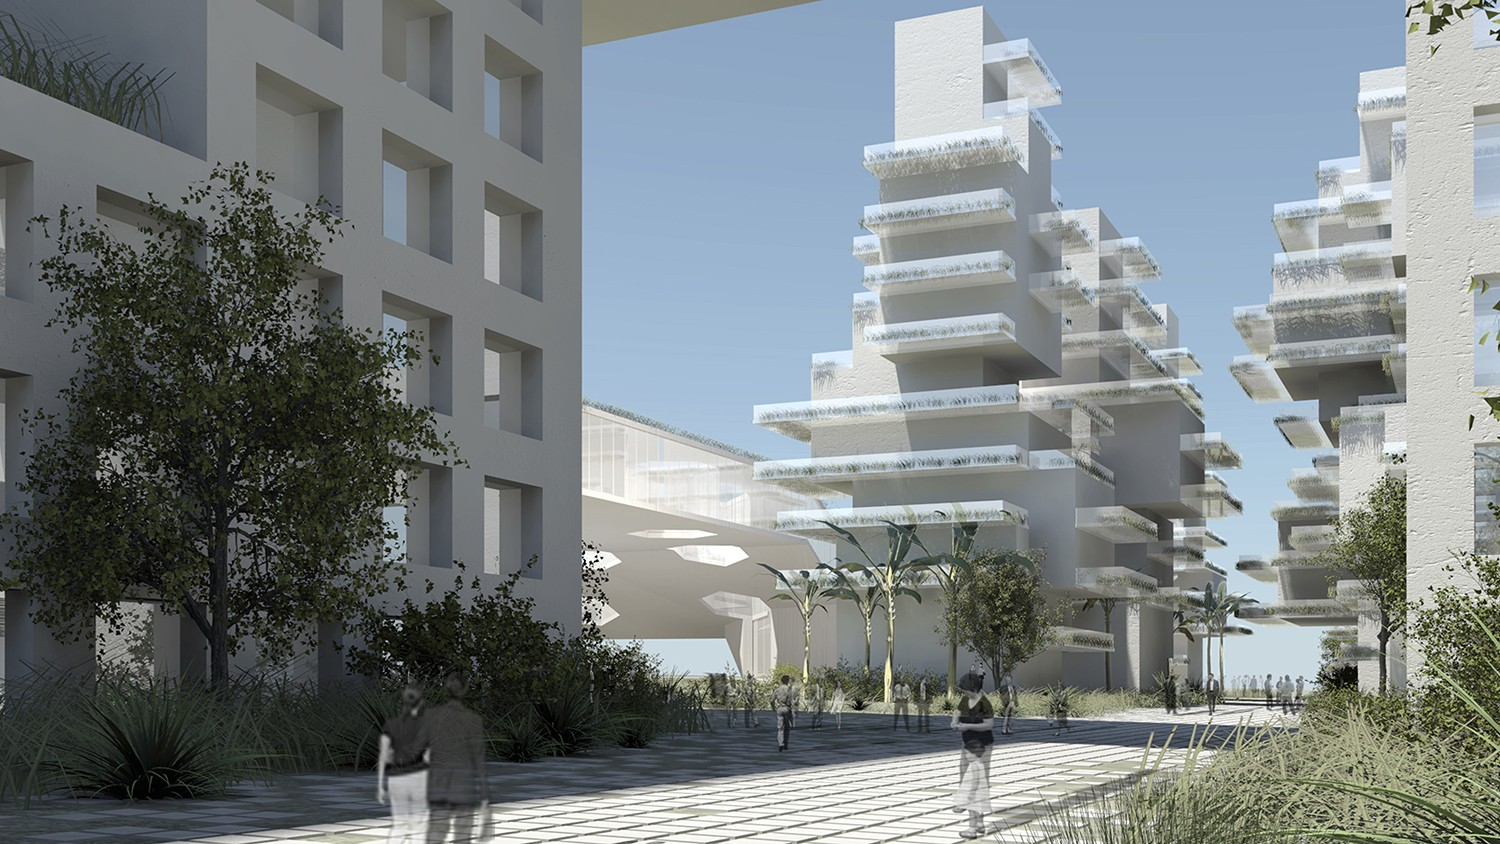 https://s3.us-east-2.amazonaws.com/steven-holl/uploads/projects/project-images/StevenHollArchitects_Dongguan_20130301_fr1203-2400_Fractus17_edited_WH.jpg